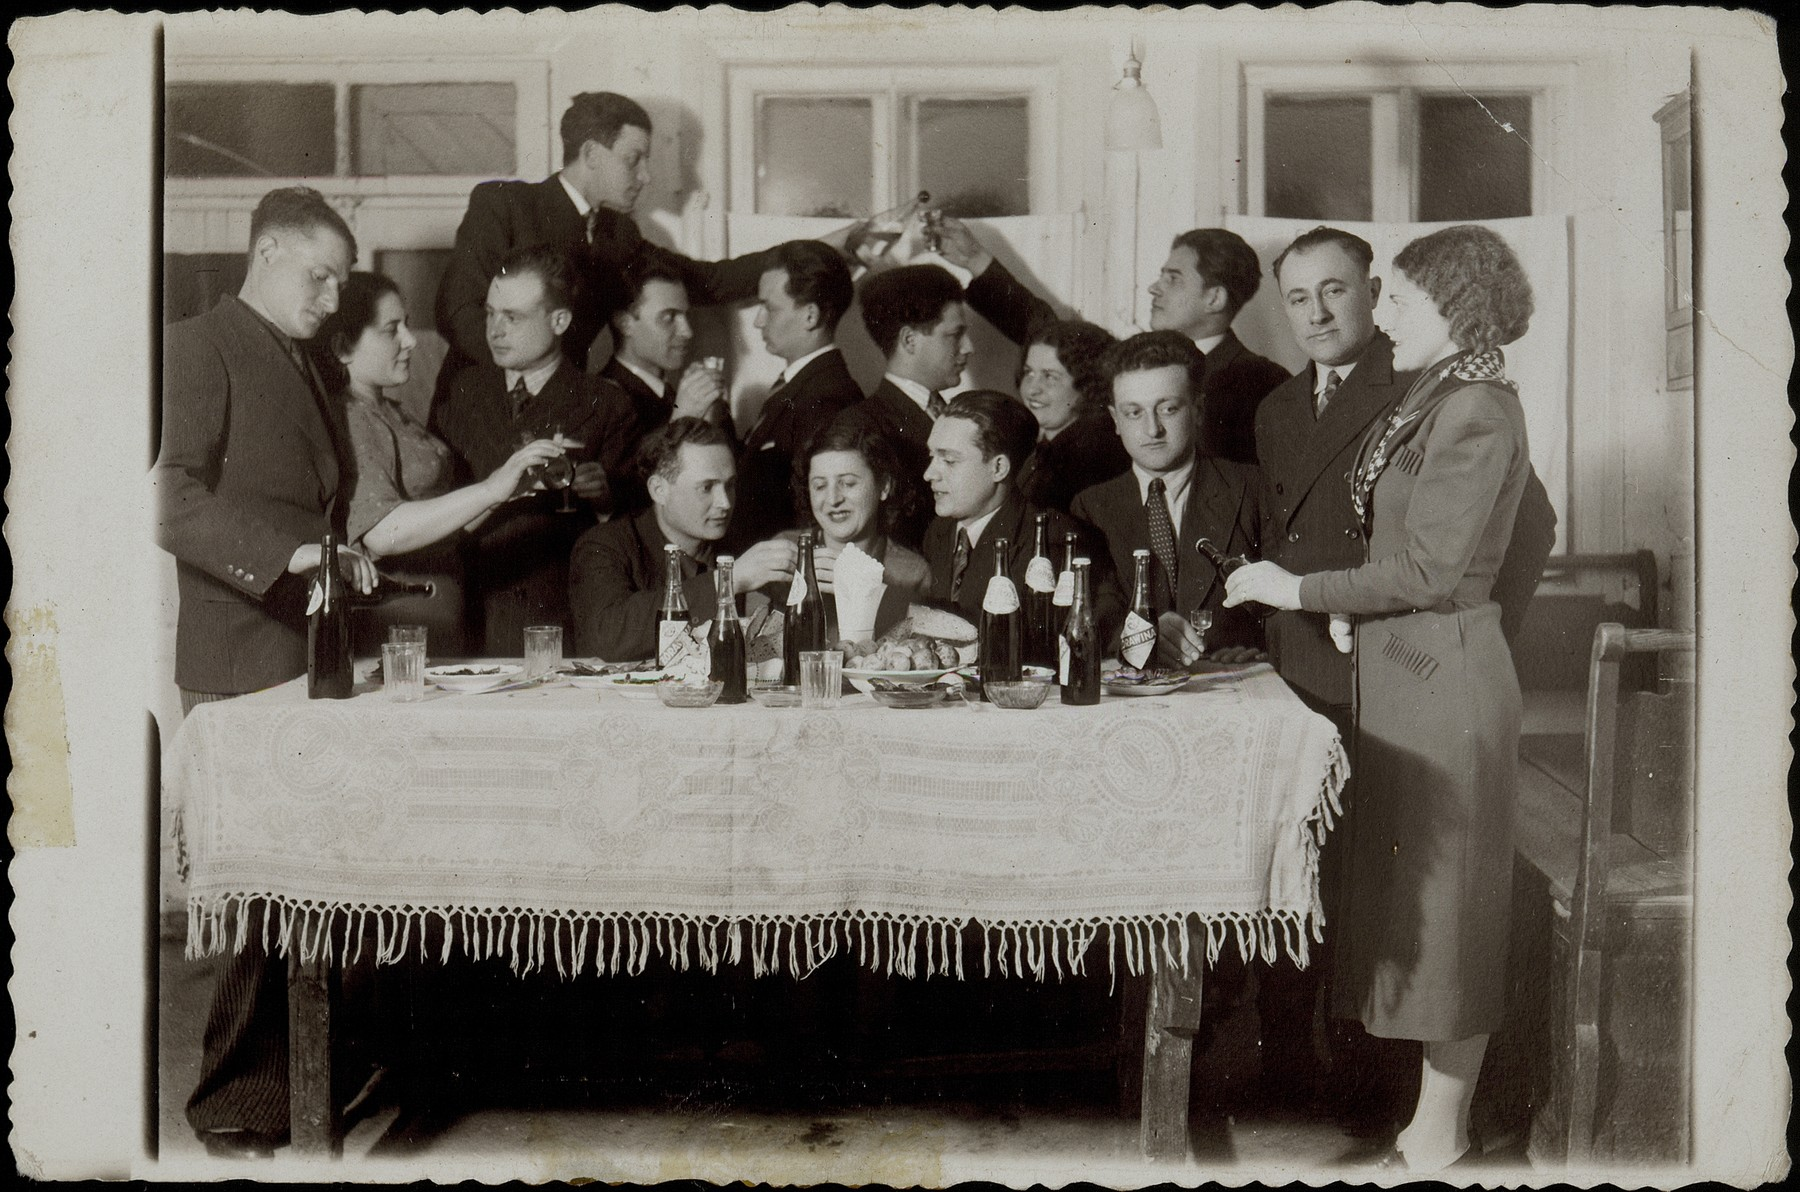 A group of friends enjoy a glass of wine at a Saturday night party.   Standing at the far right is Sarah Michalowski.  Sixth from right (facing left) is Etchke Jurdyczanski (Isaac Juris) and at the far left is Bere Leibke (last name unknown). Names of others are unknown.  Some were members of the Communist party.   Etchke Jurdyczanski (Isaac Juris) survived the Holocaust in Siberia. The majority of the other people in the photo were murdered during the Holocaust.